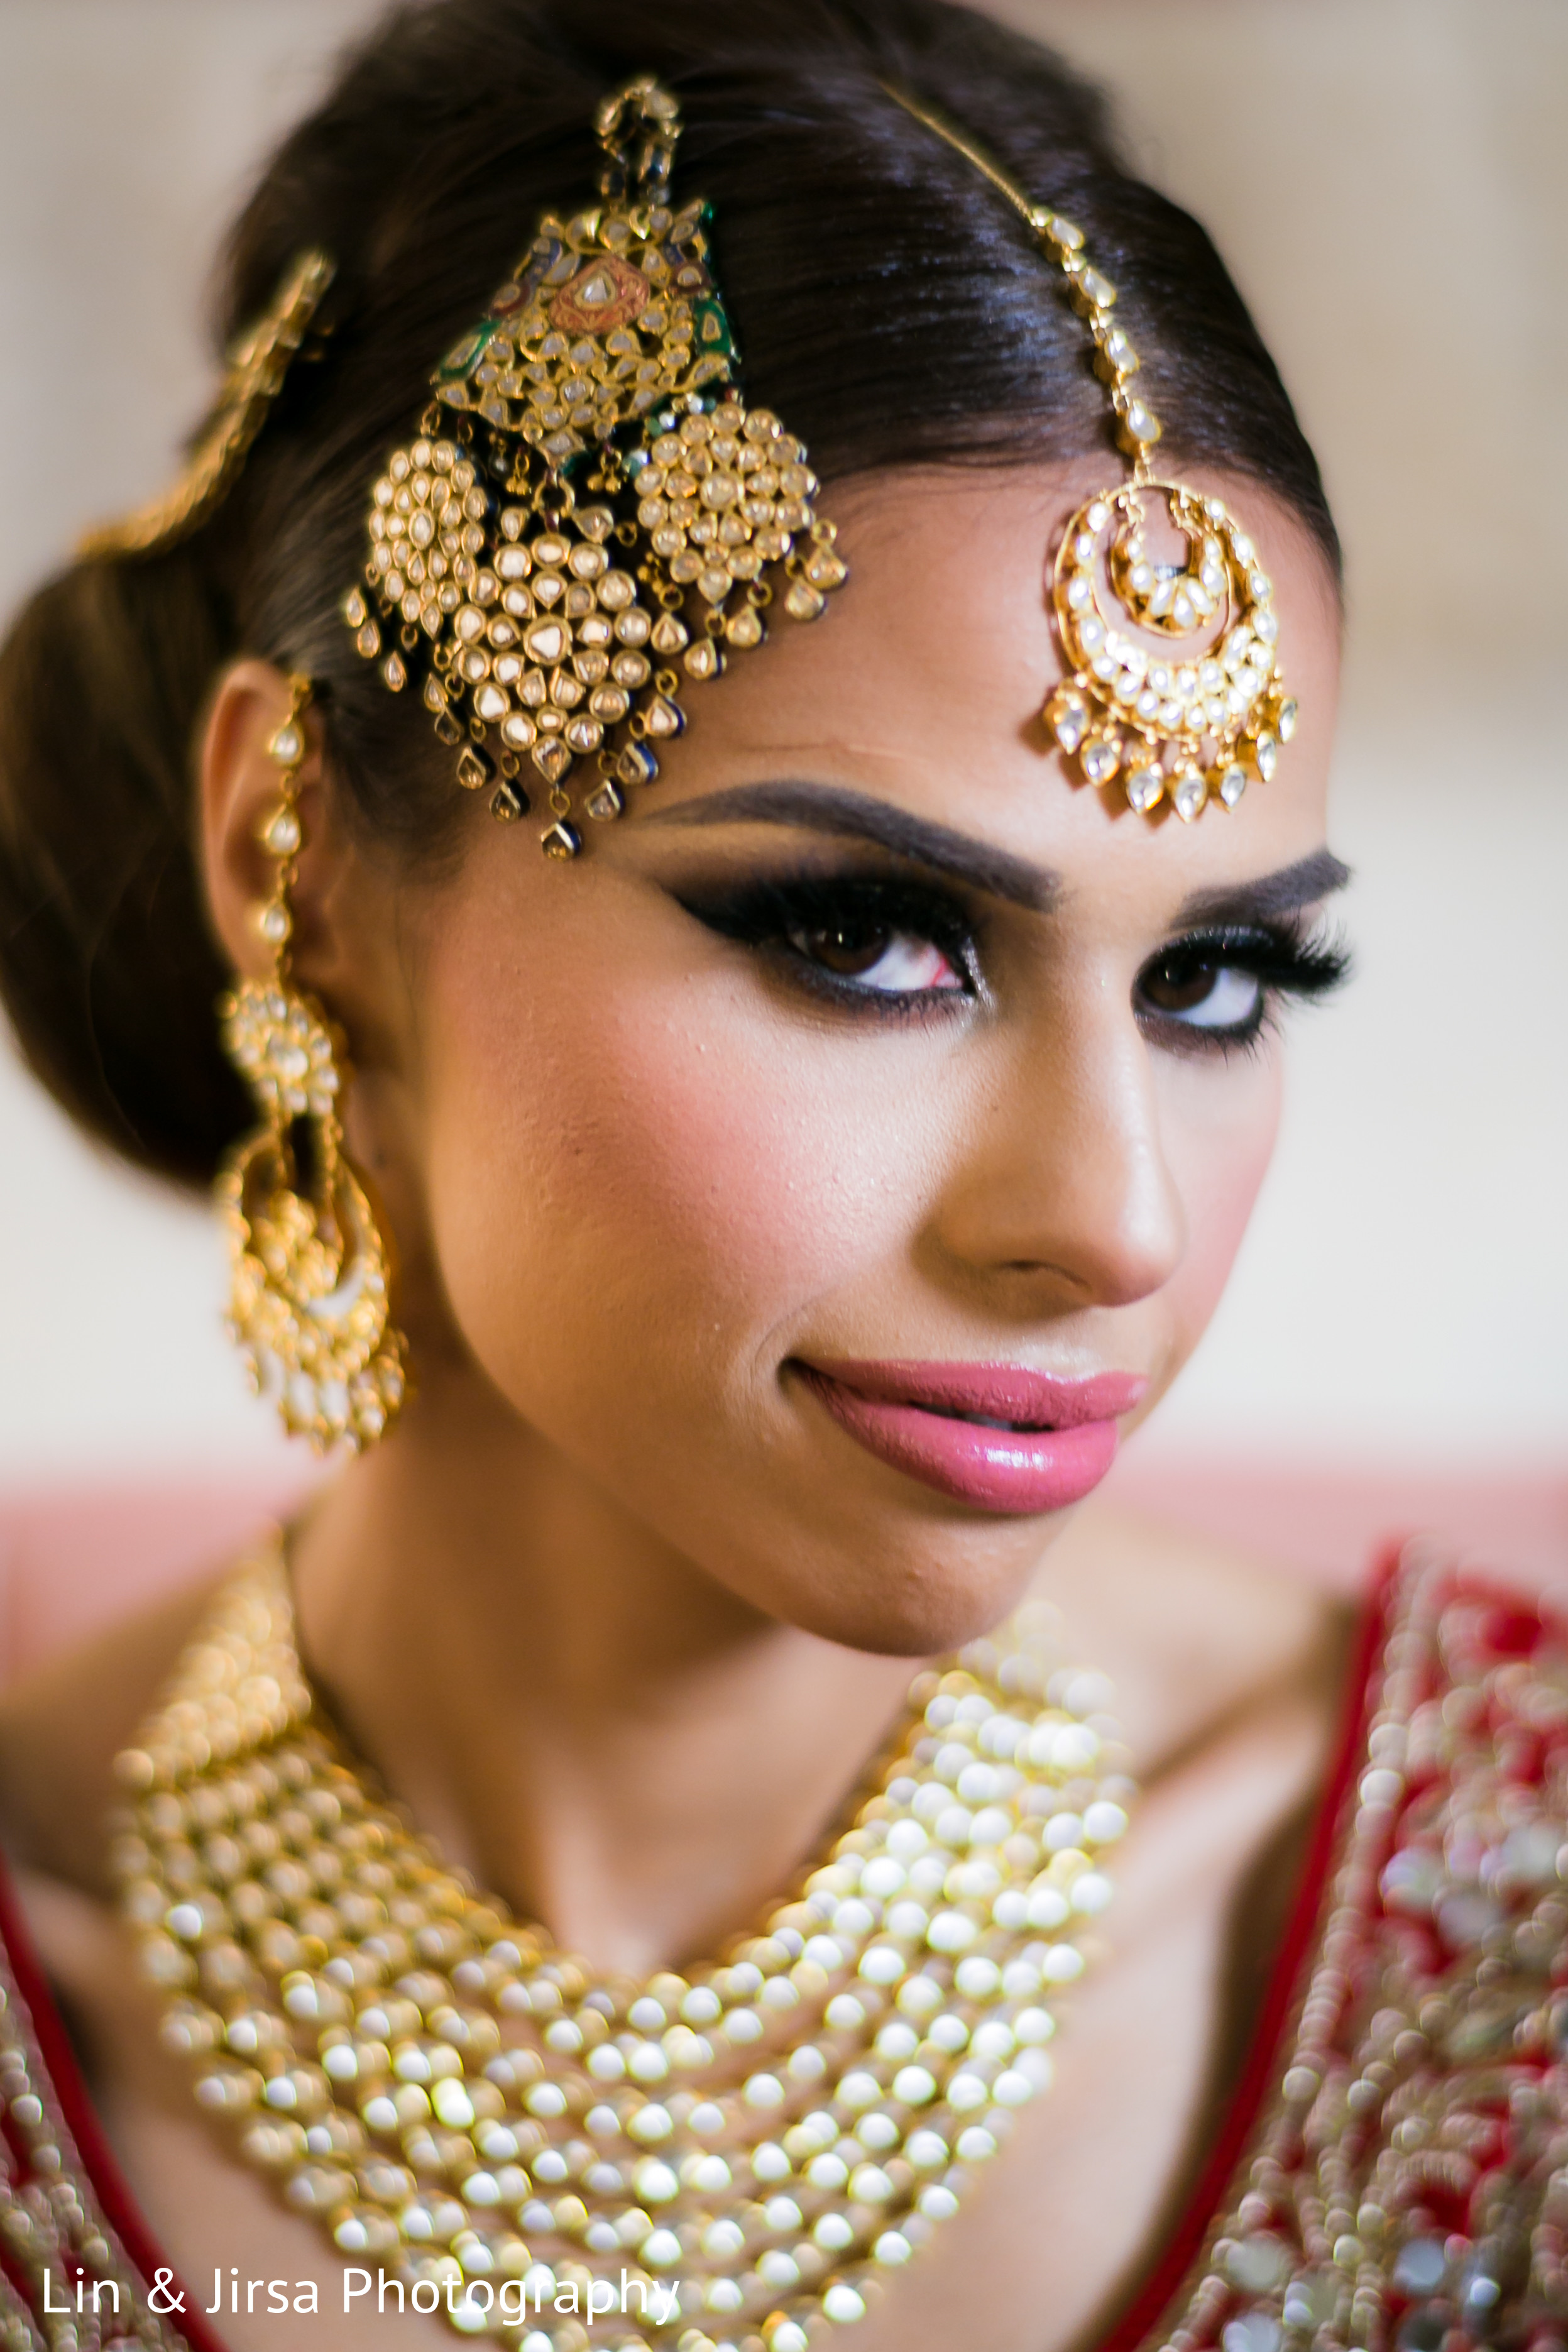 Inspiration Photo Gallery – Indian Weddings: Indian bridal jhoomar ...